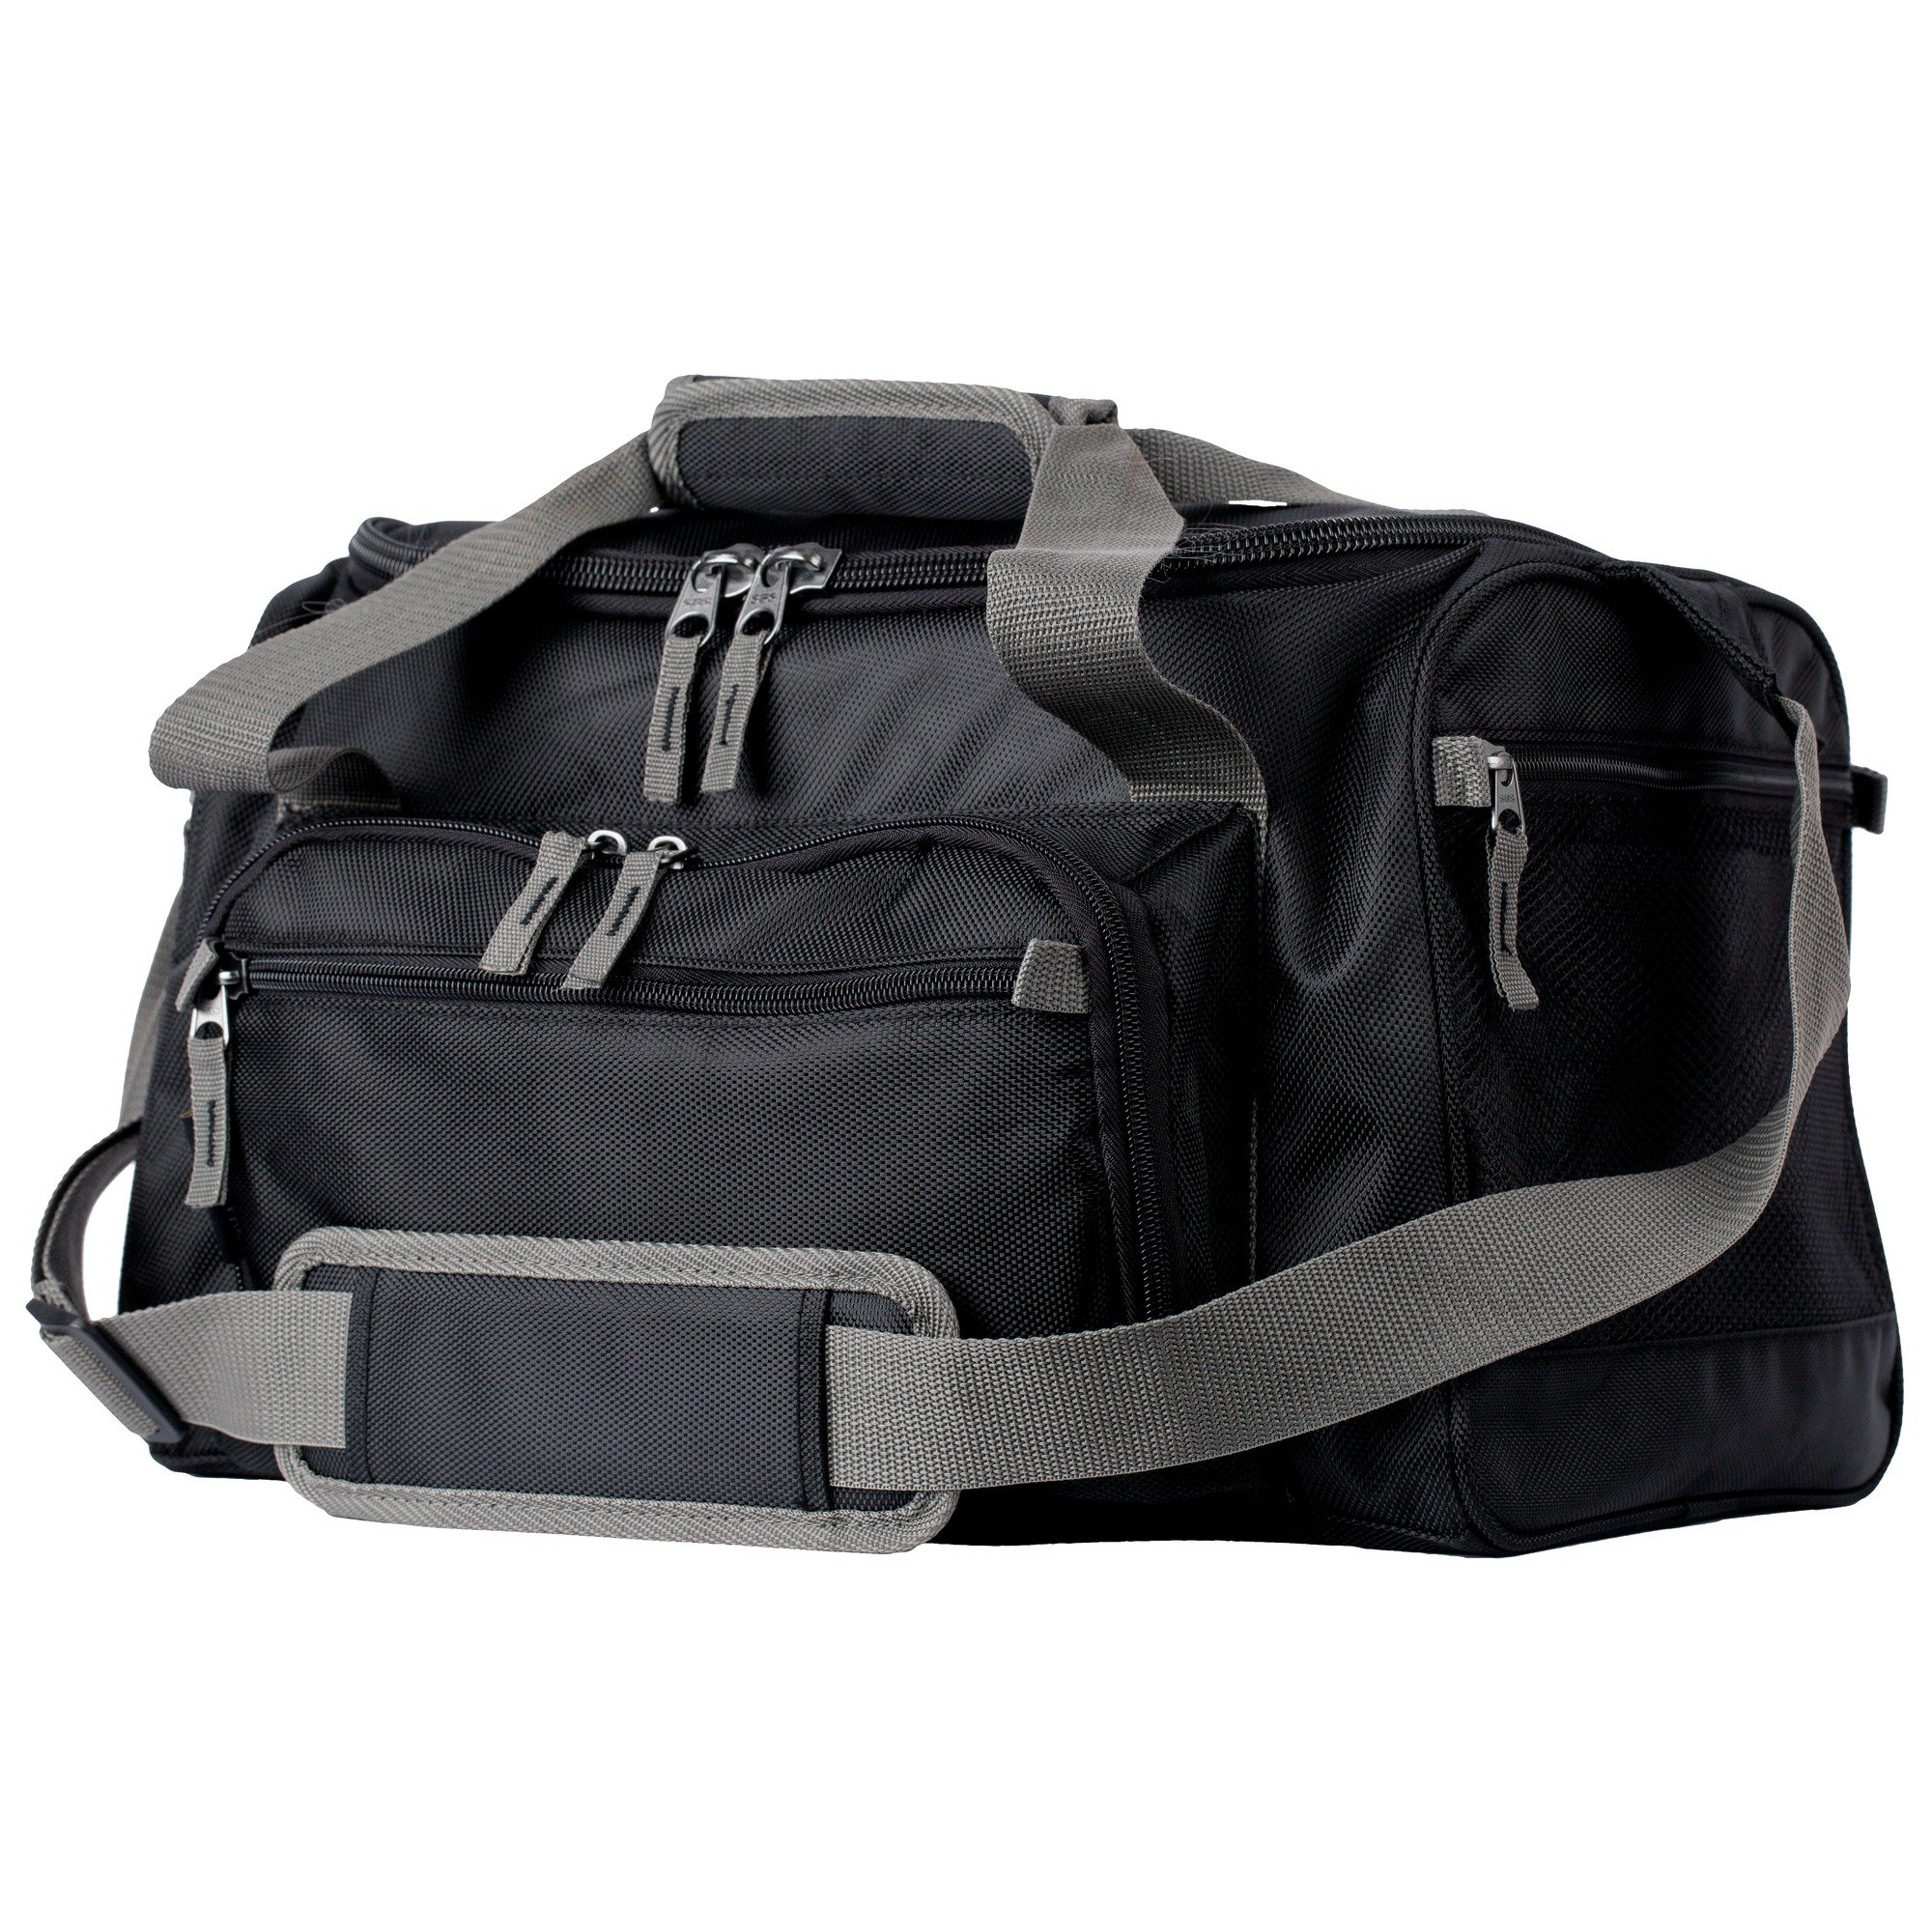 Extreme Pak Large Black Cooler Bag w/Zip-Out Liner by ExtremePak